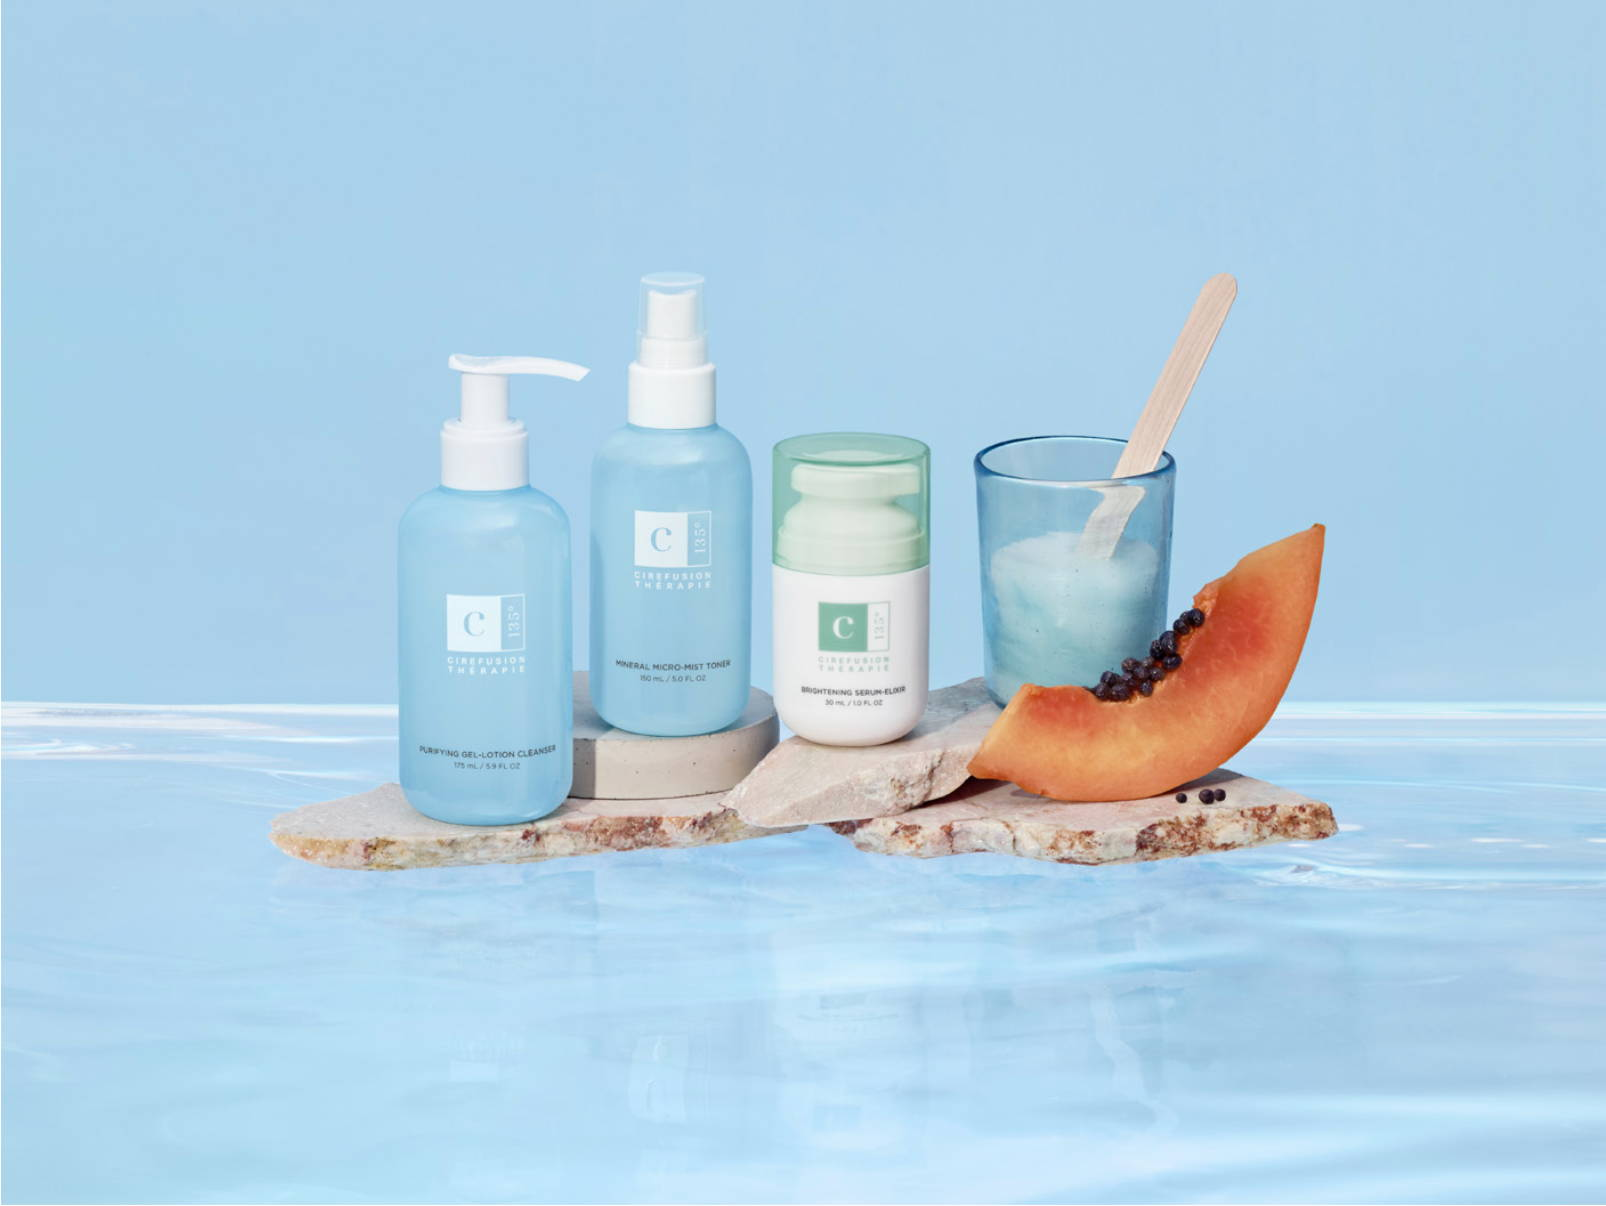 At Home Skincare Thérapie Collection products